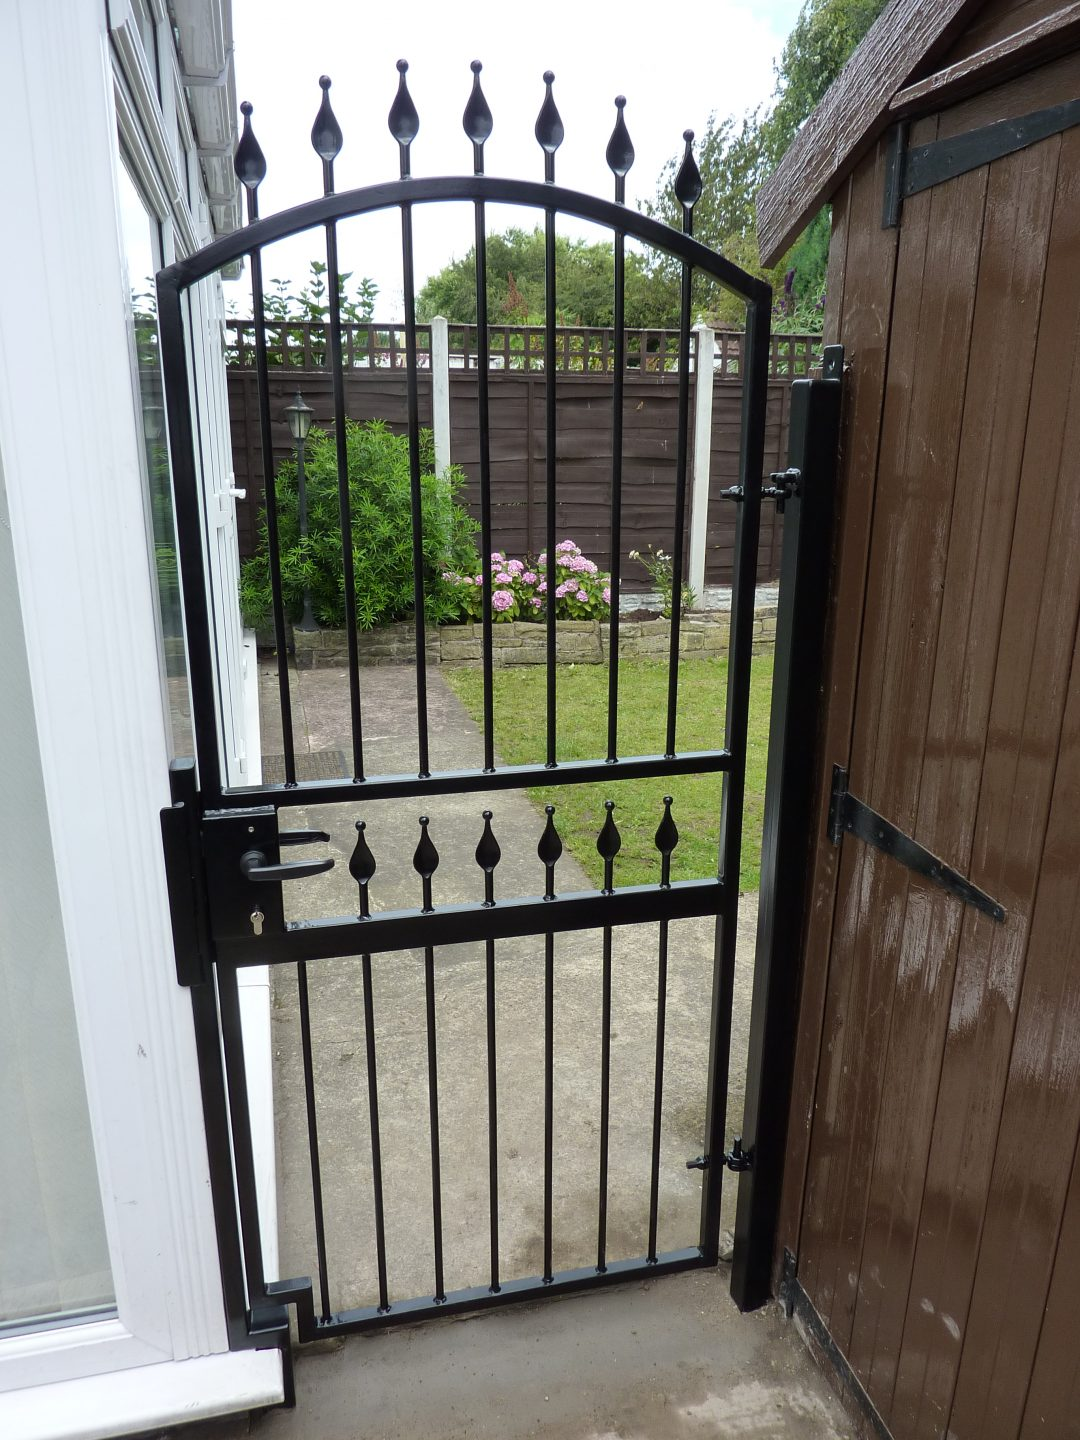 Single gate with lock